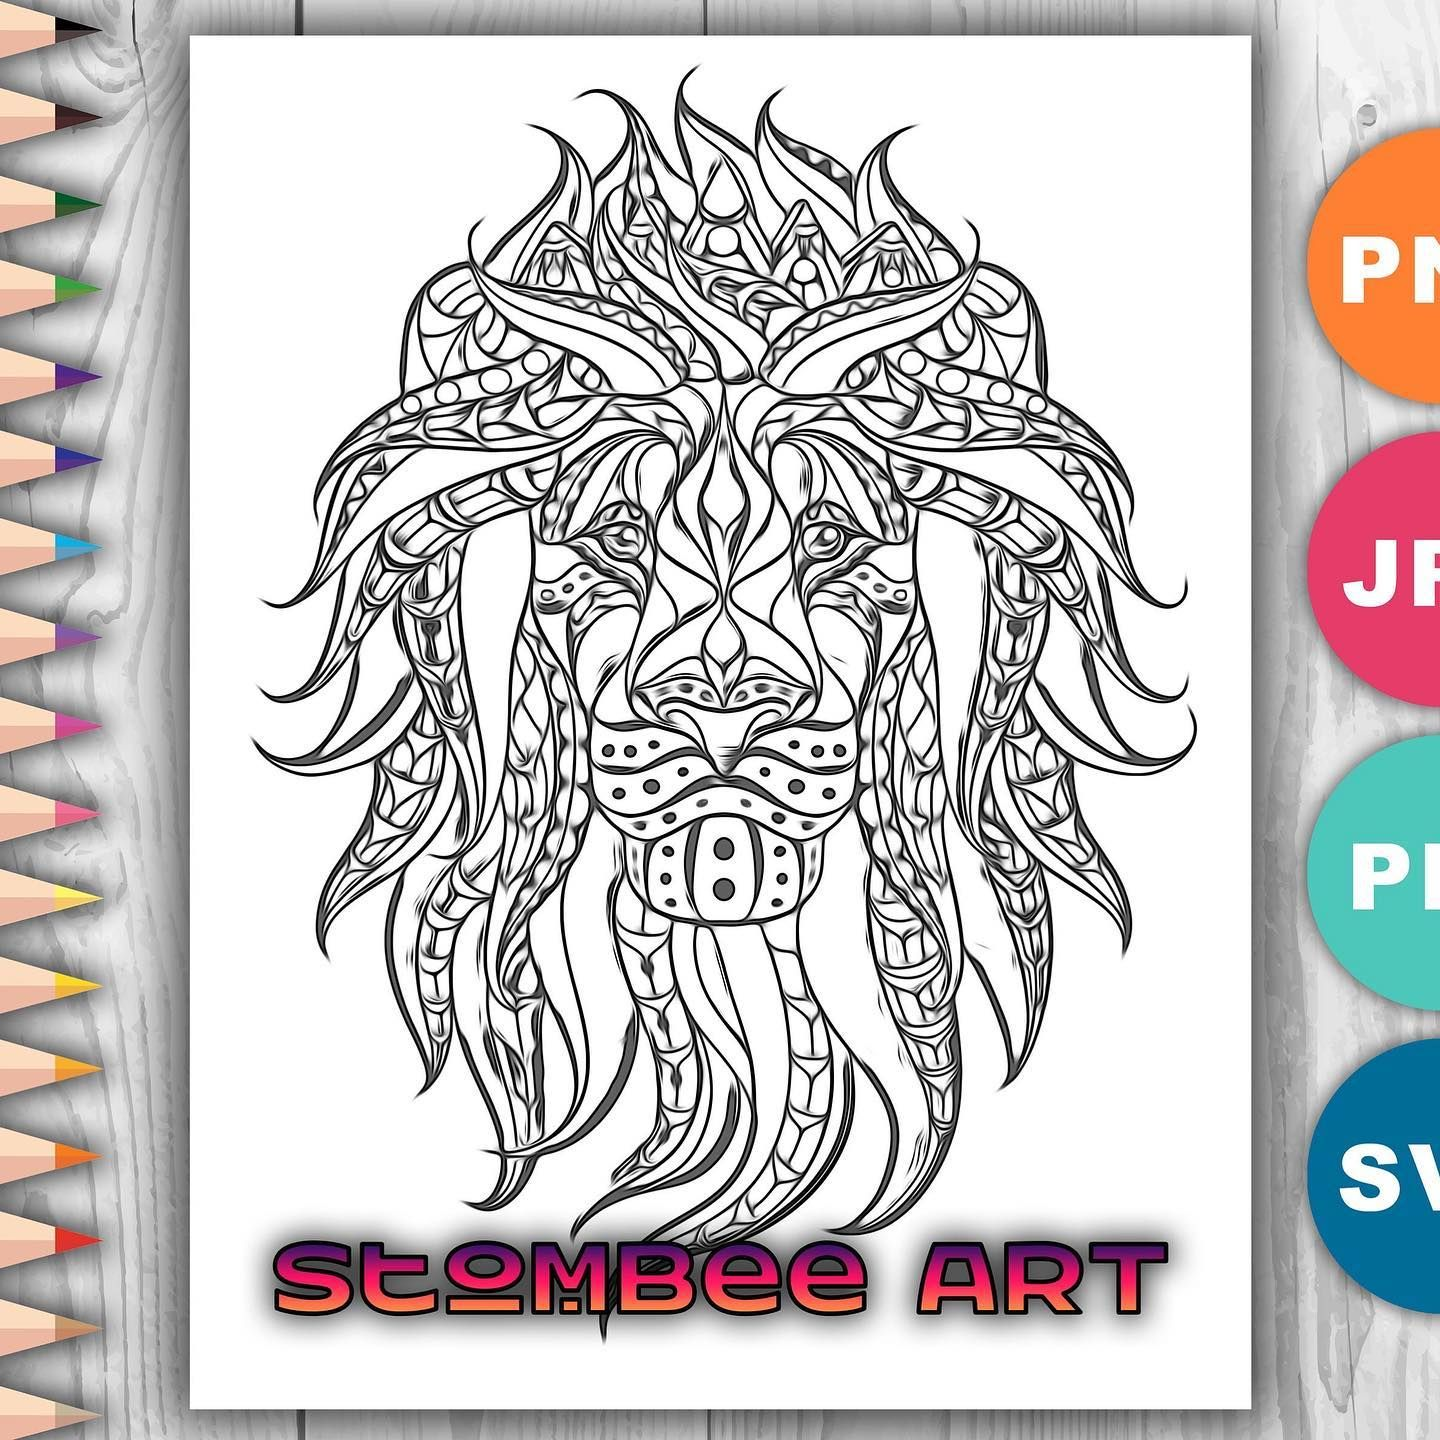 Pin On Coloring Pages For Adults And Kids